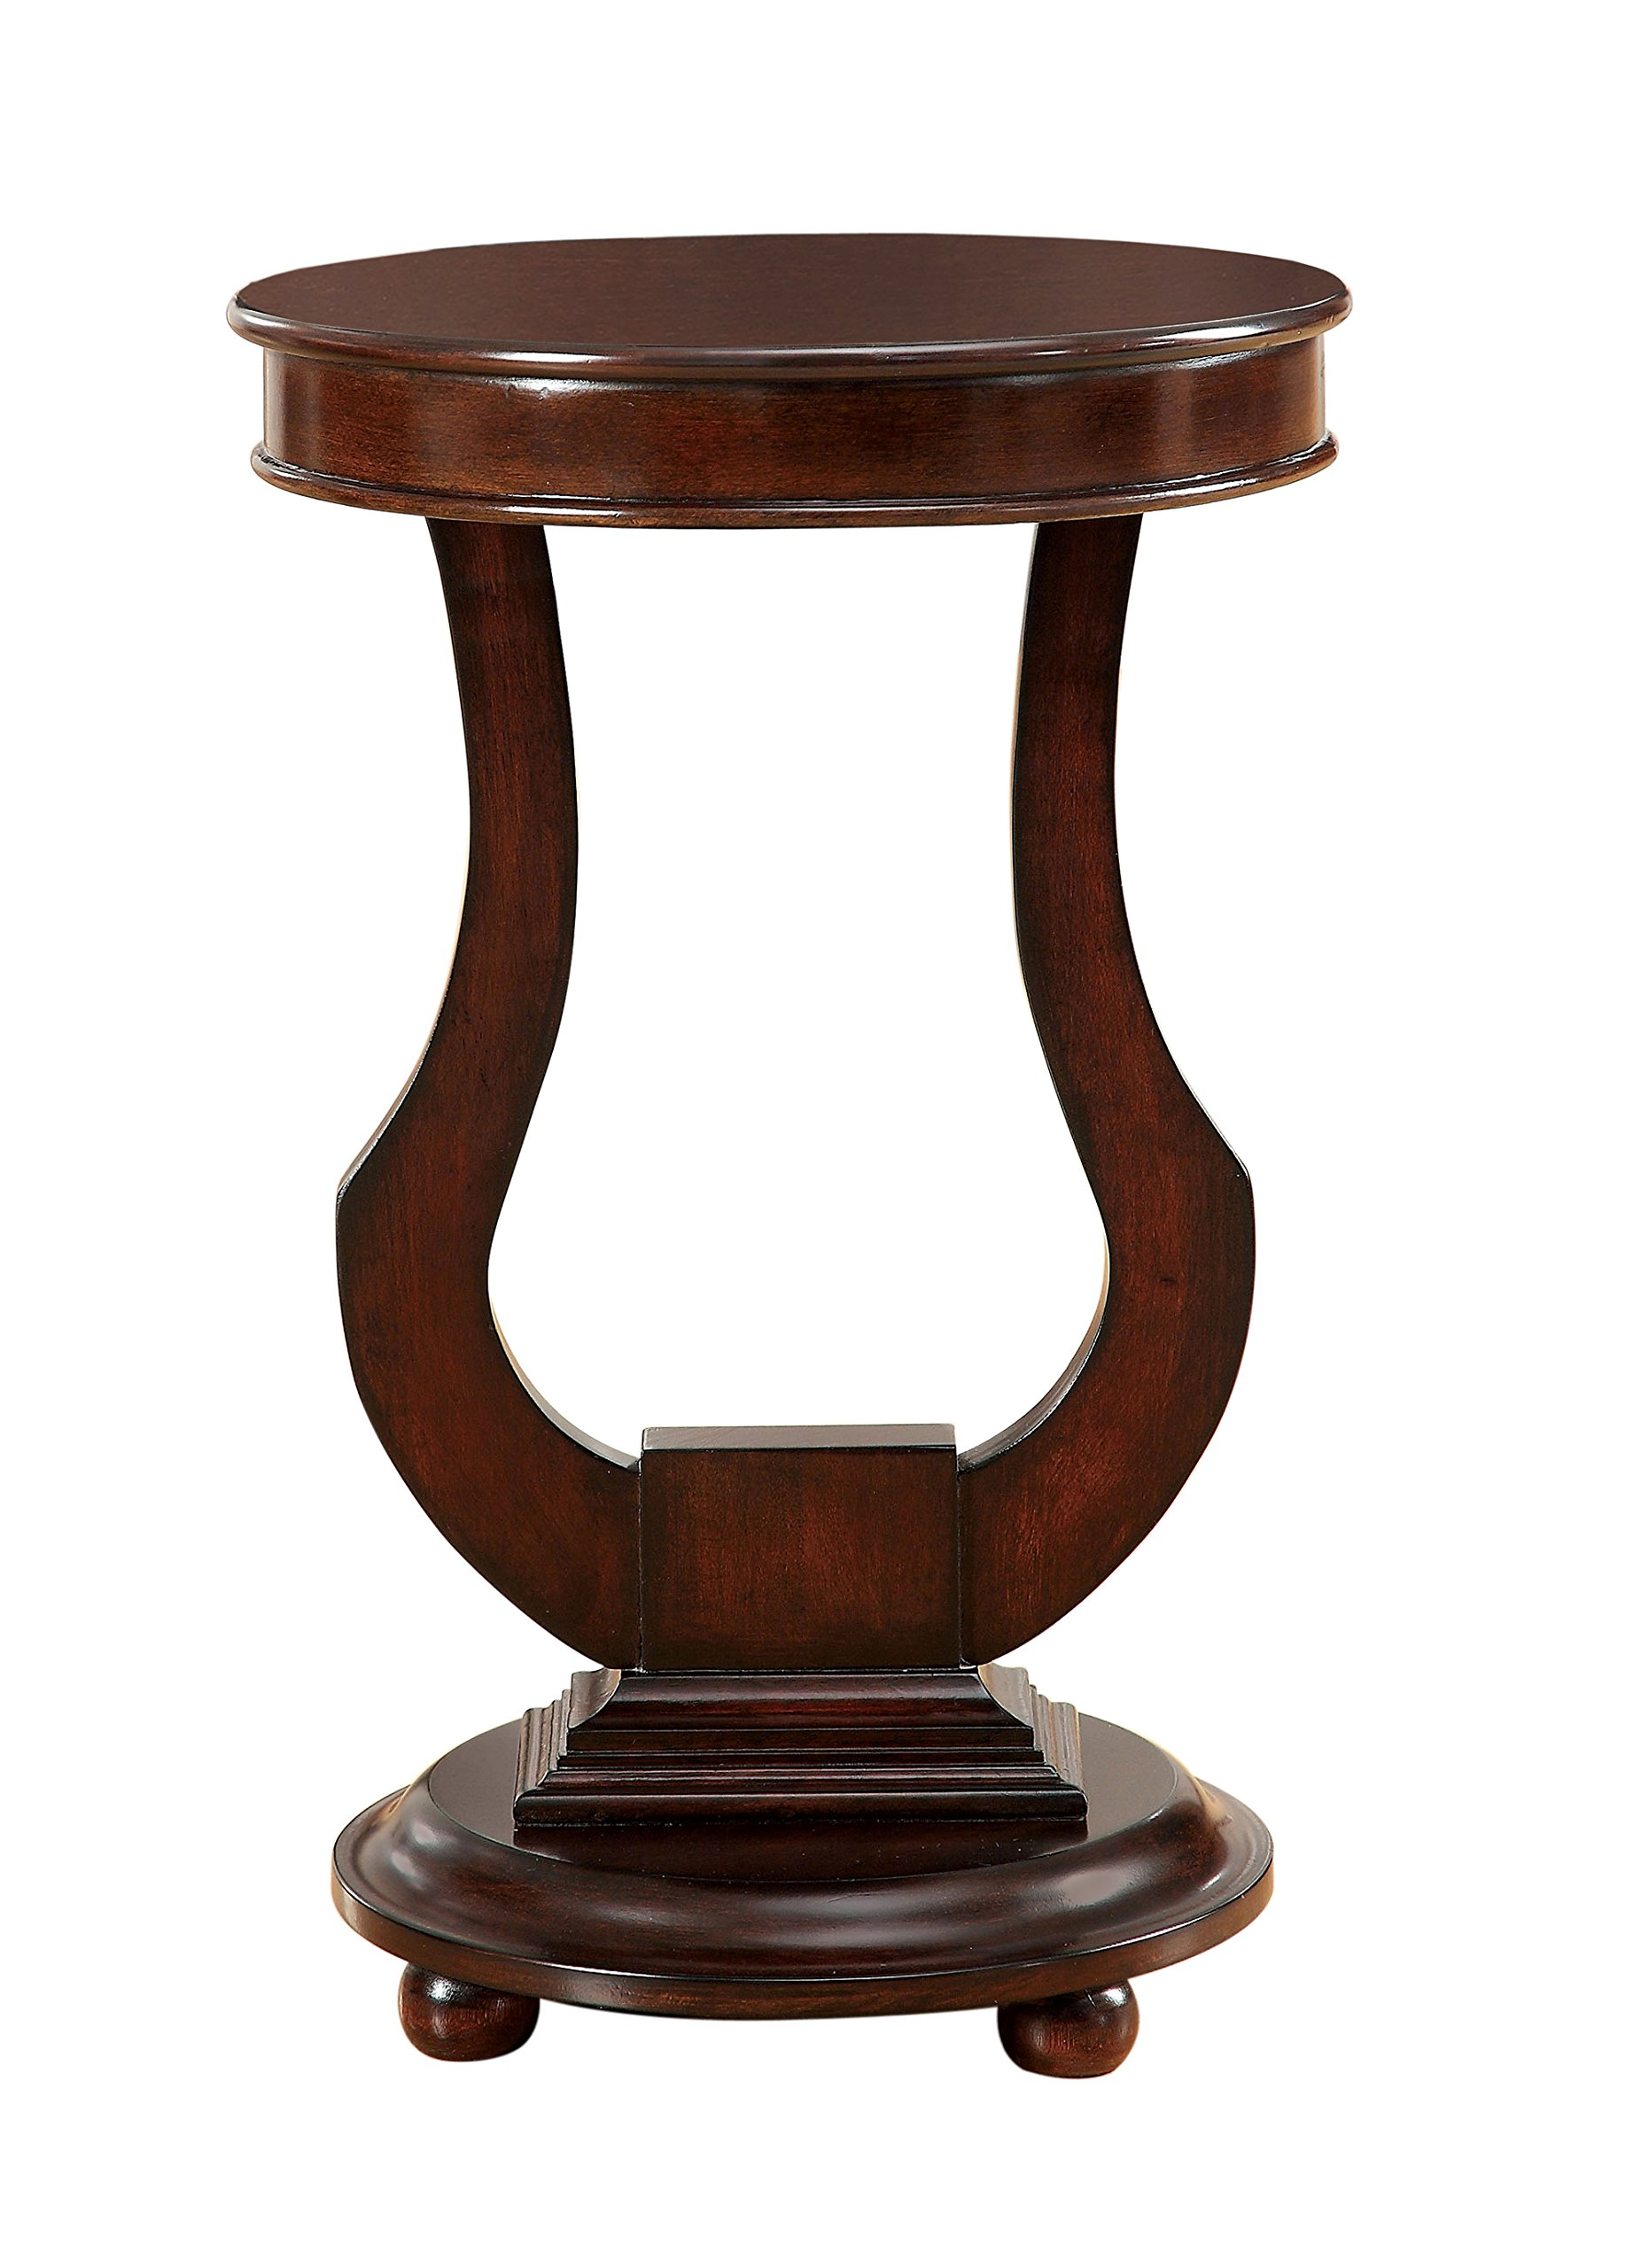 Furniture of America Ringling Solid Wood Side Table, Dark Walnut